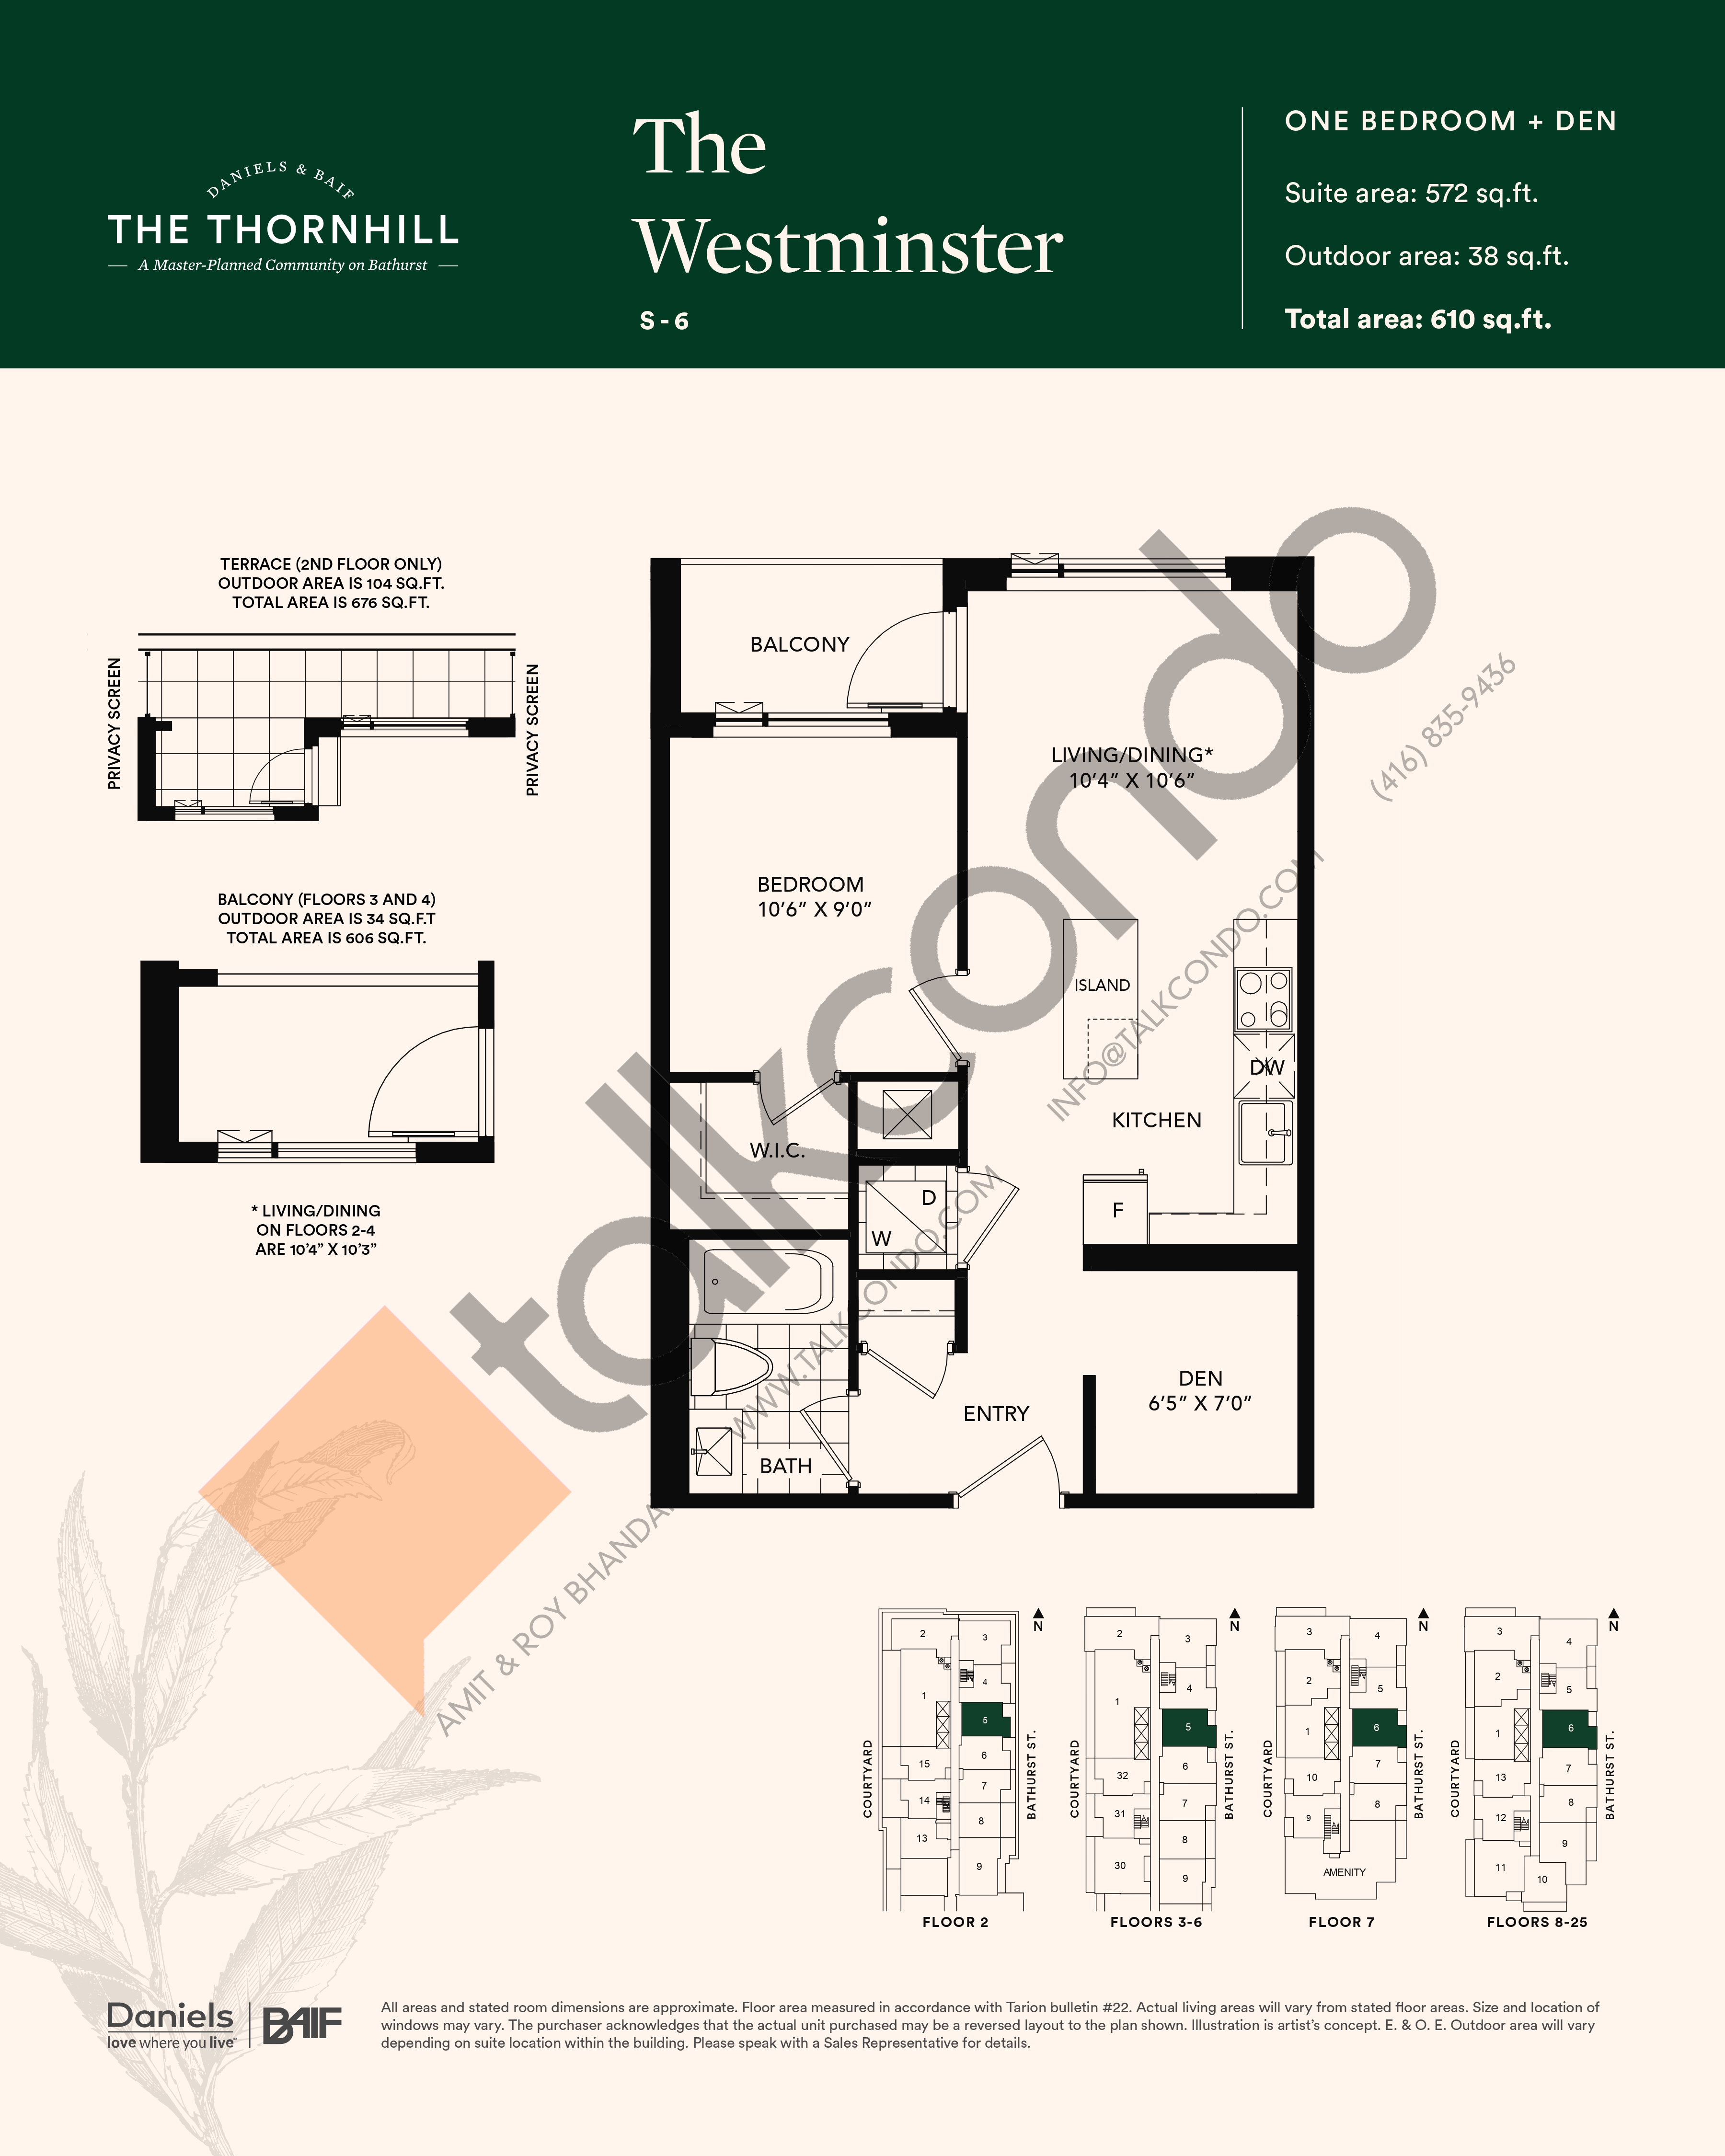 The Westminster Floor Plan at The Thornhill Condos - 572 sq.ft